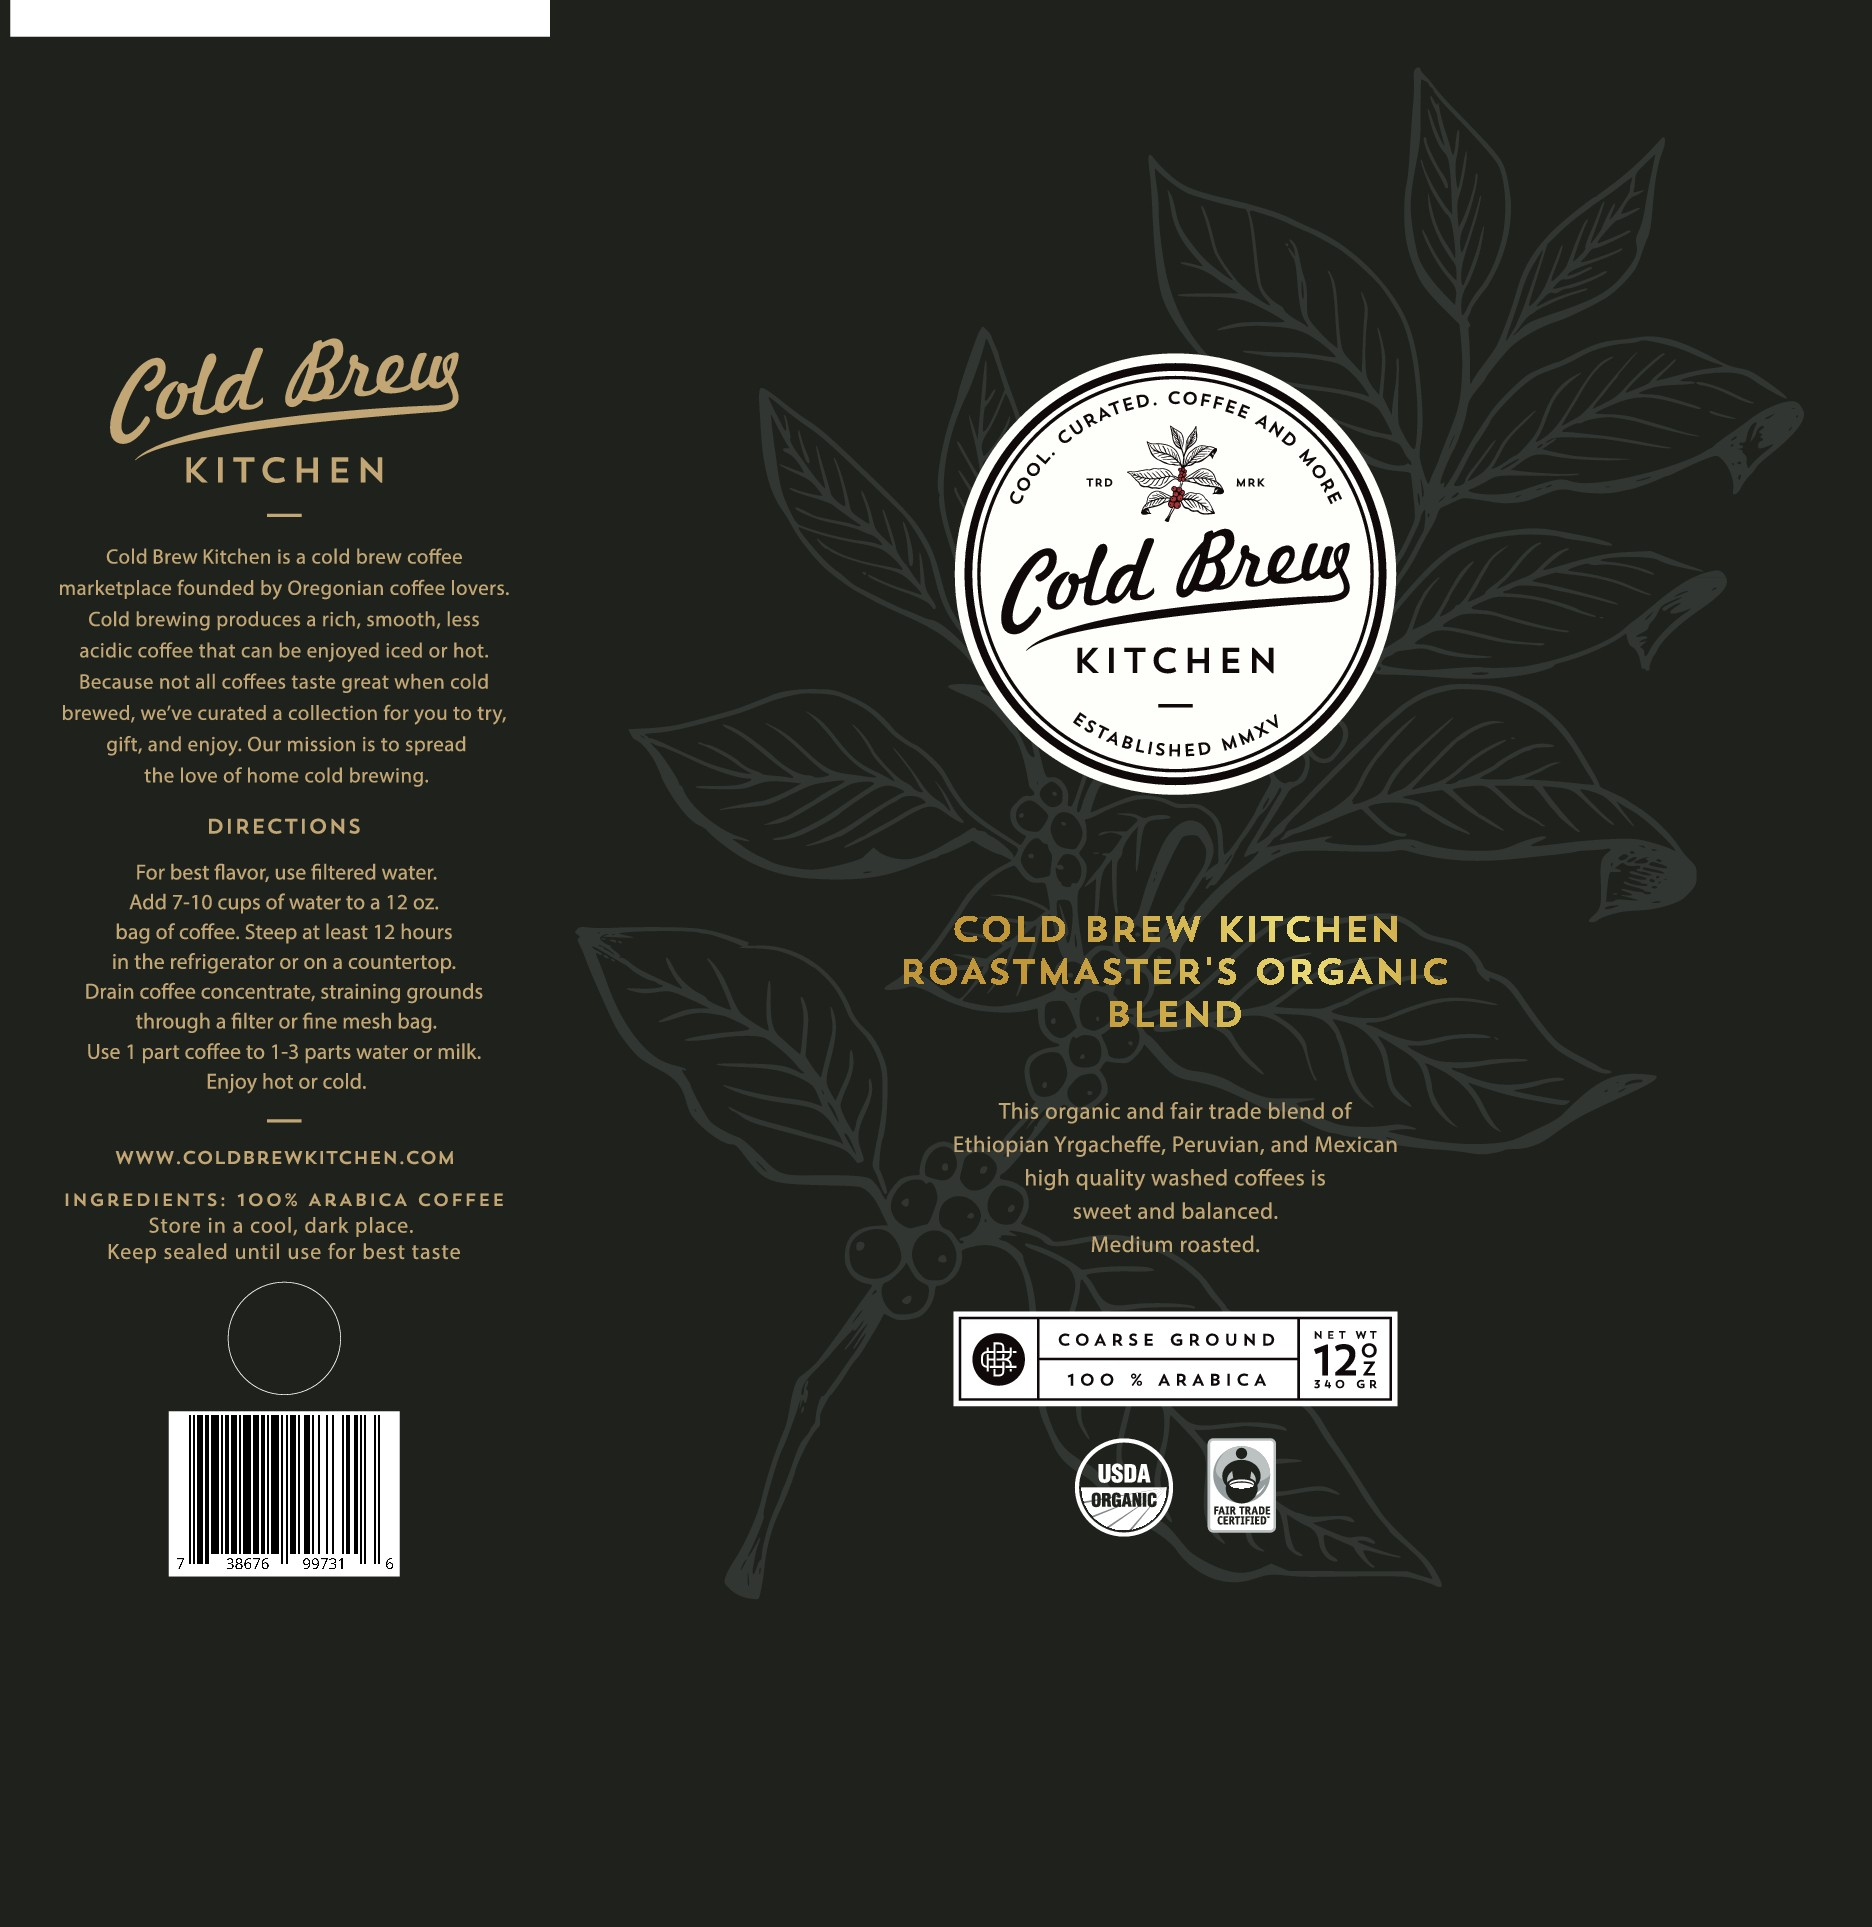 Product packaging revisions